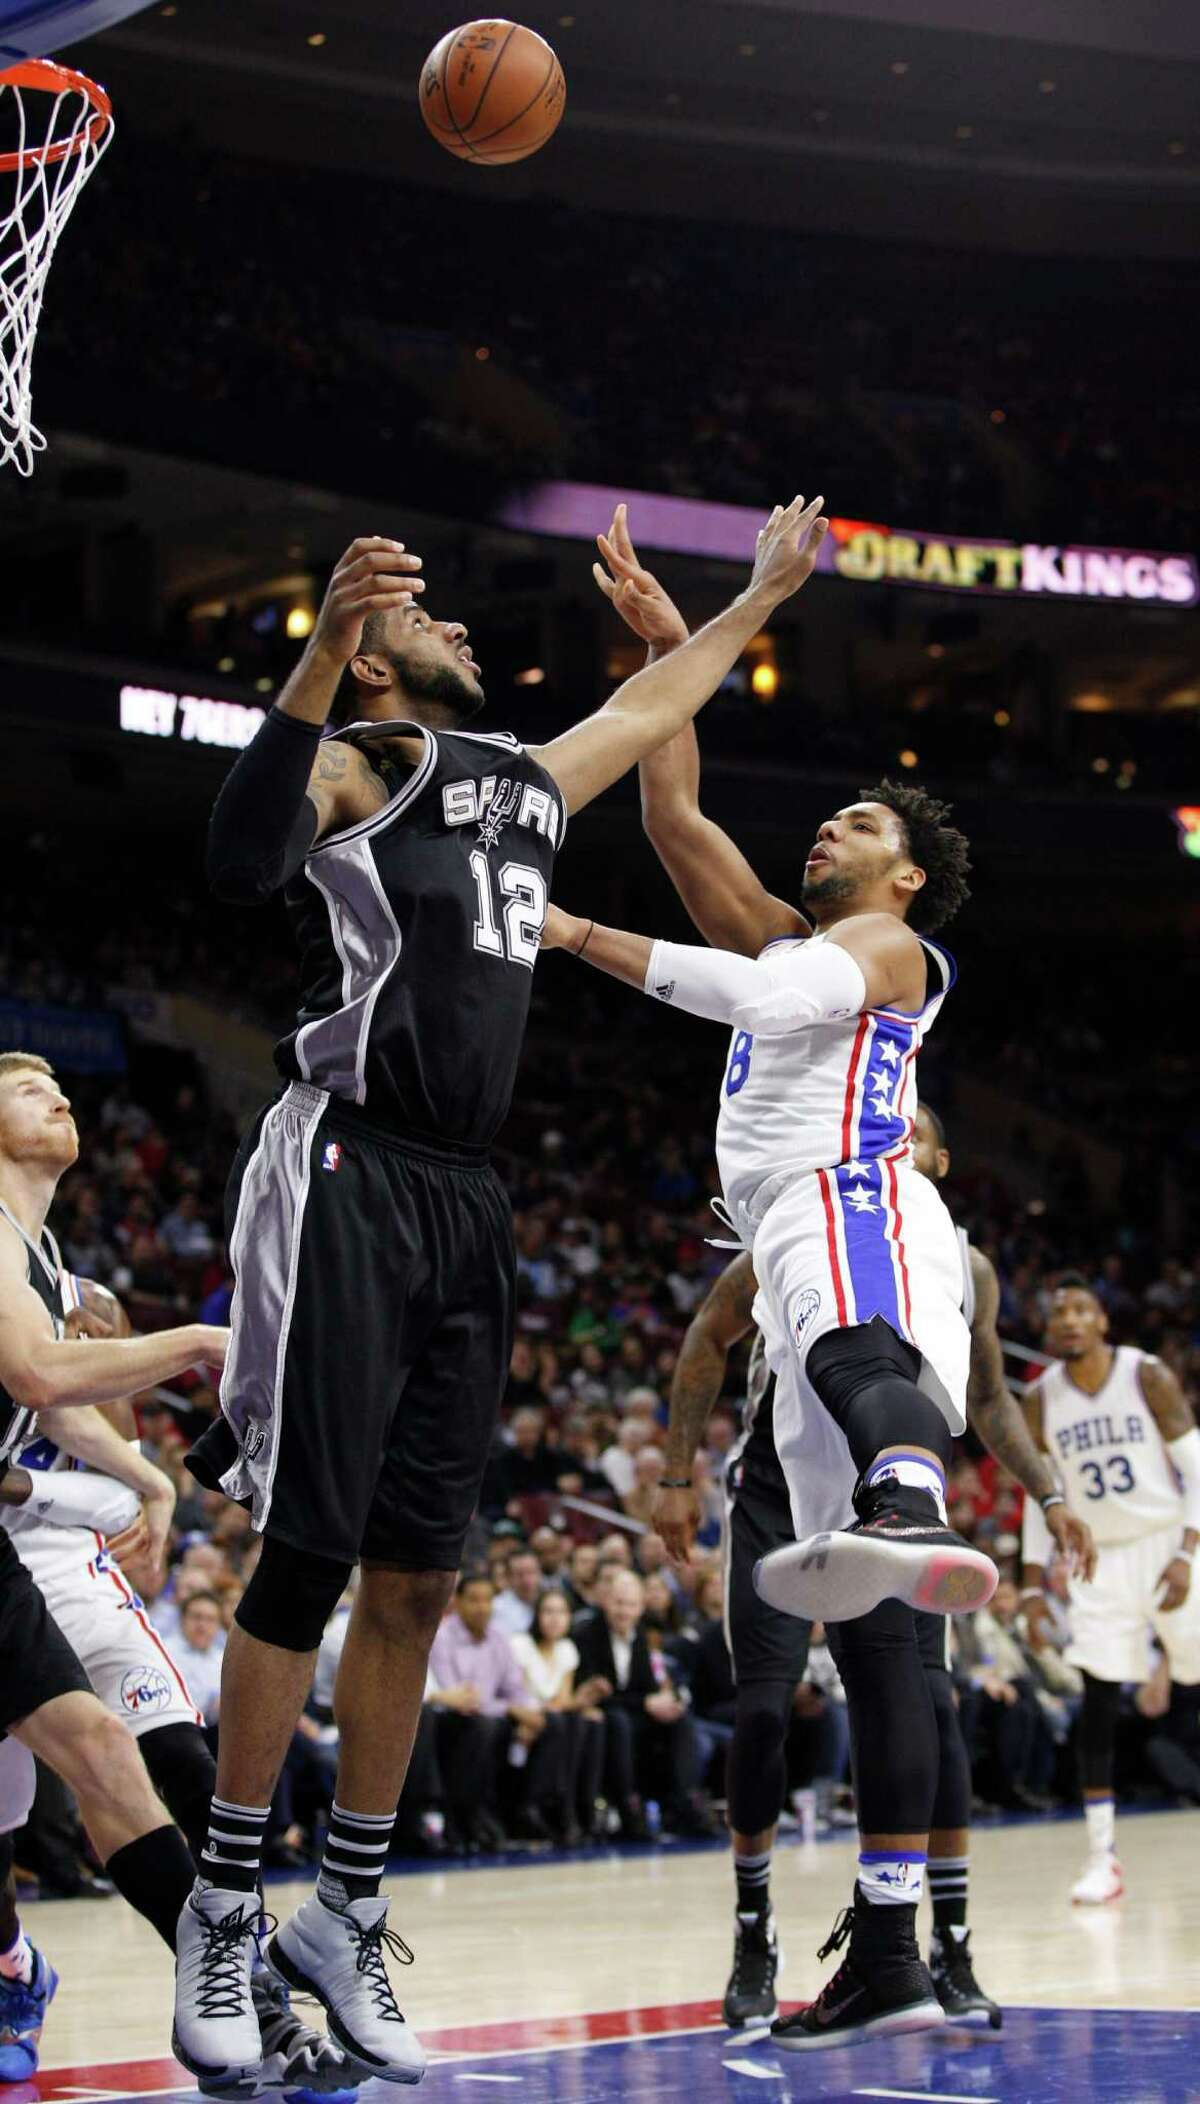 2799 x 4904~~$~~Philadelphia 76ers' Jahlil Okafor, right, puts up the shot with San Antonio Spurs' LaMarcus Aldridge, left, defending during the first half of an NBA basketball game, Monday, Dec. 7, 2015, in Philadelphia.